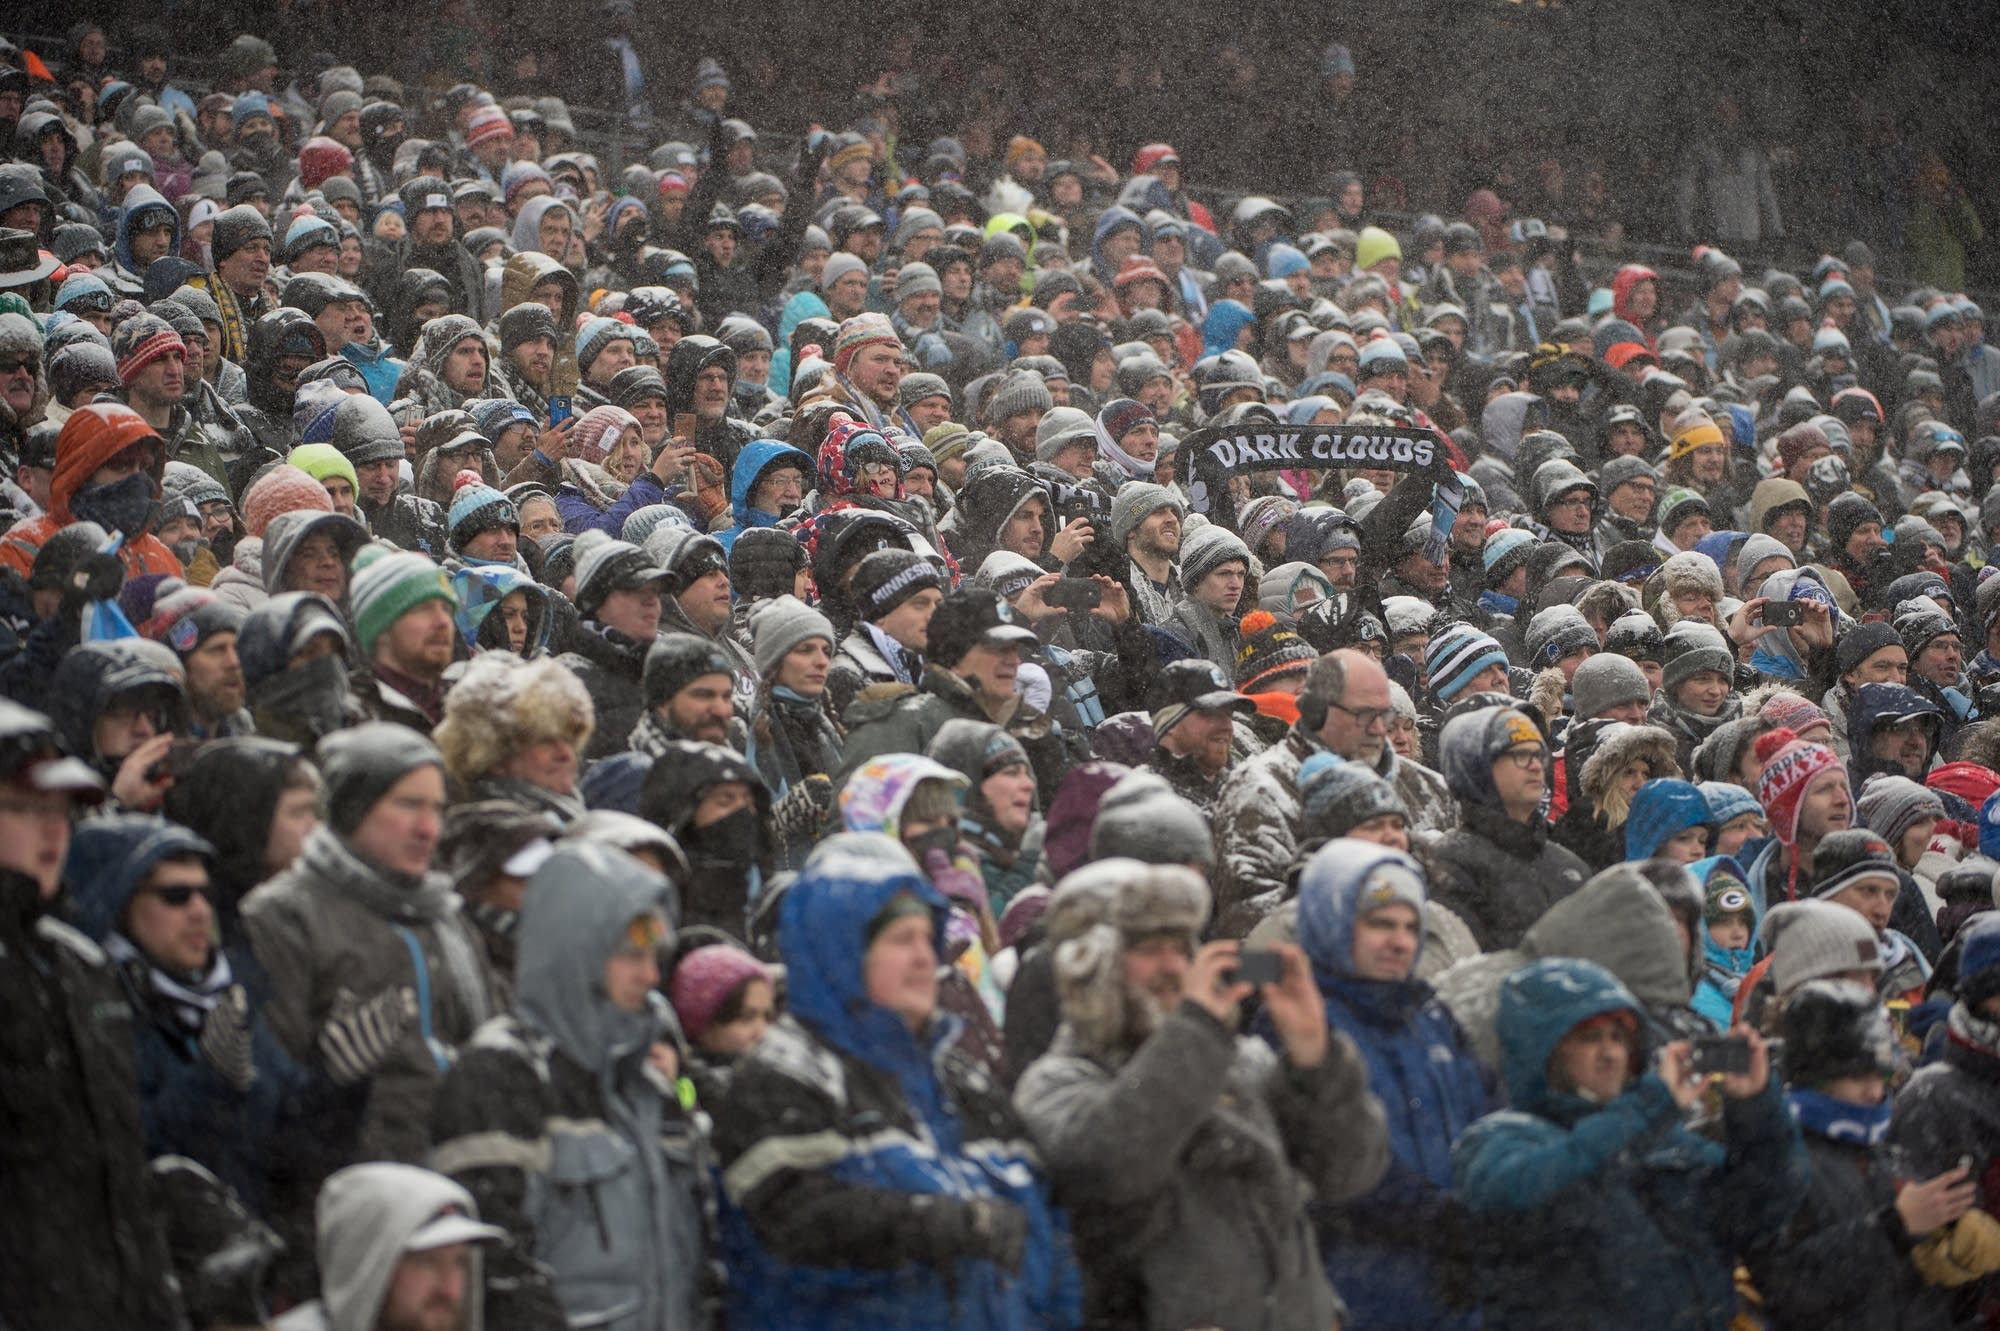 35,000 fans came out to support Minnesota United in their home opener.